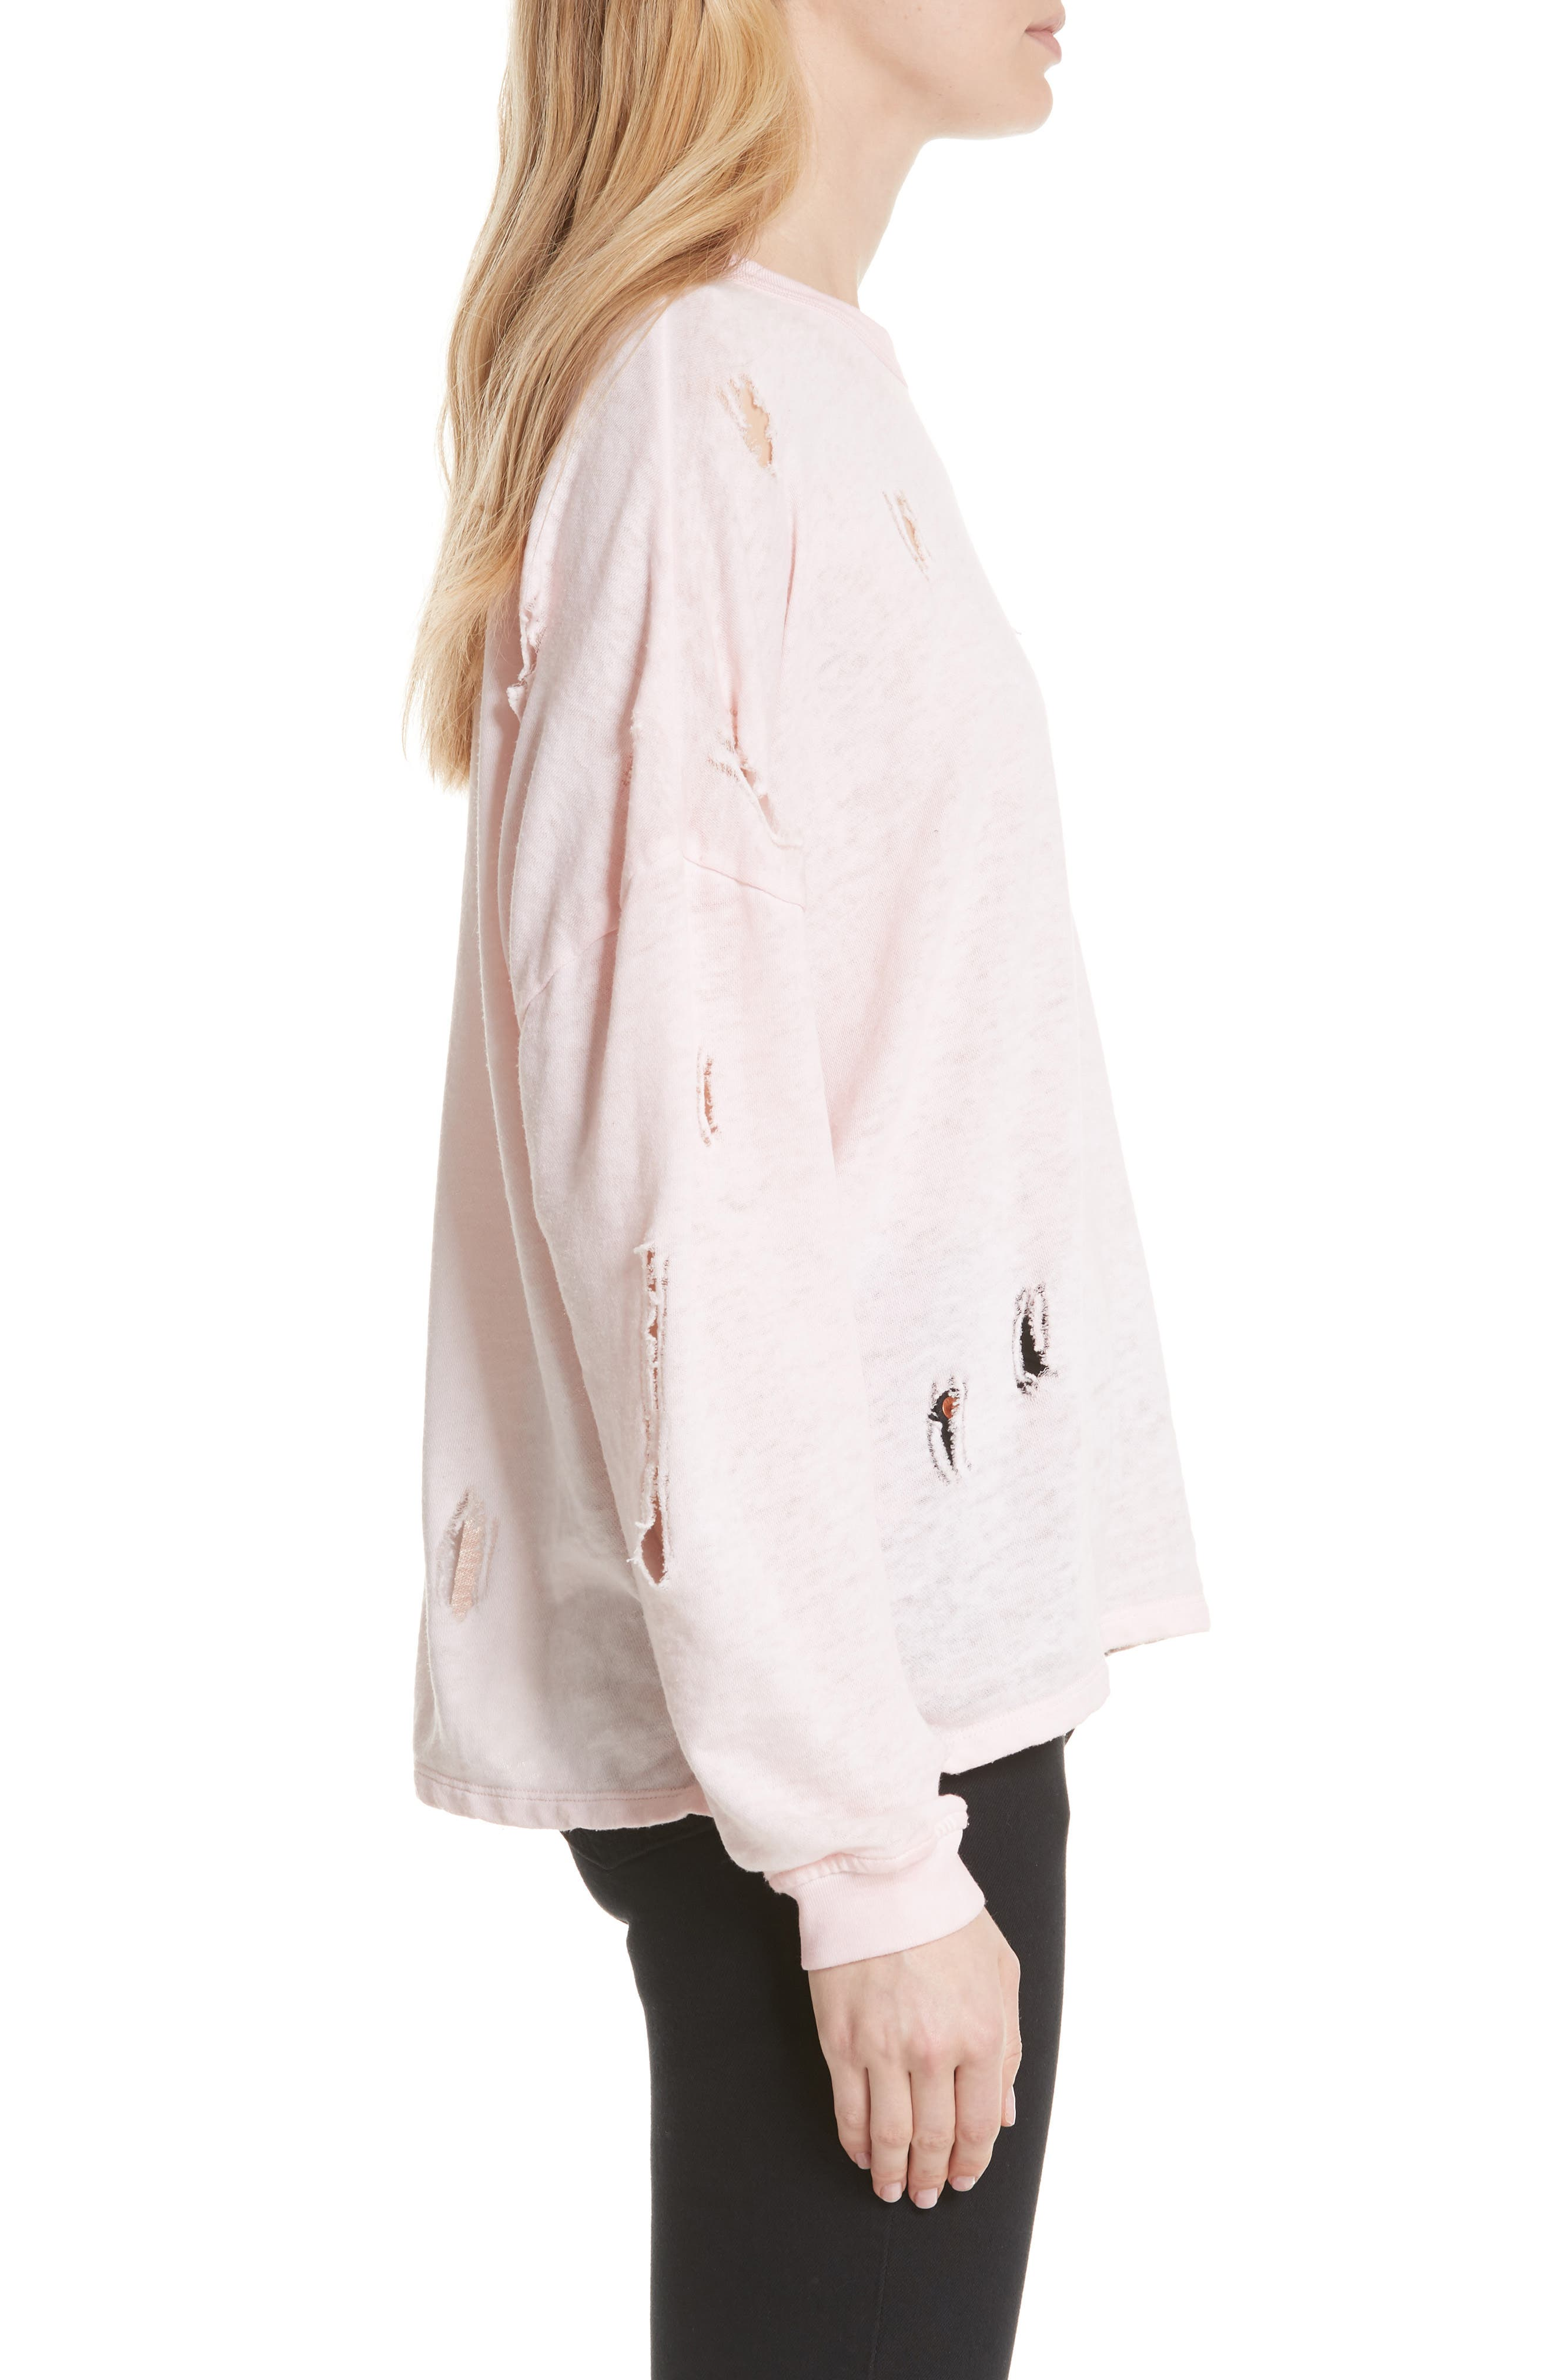 Lyzza Distressed Sweatshirt,                             Alternate thumbnail 3, color,                             680